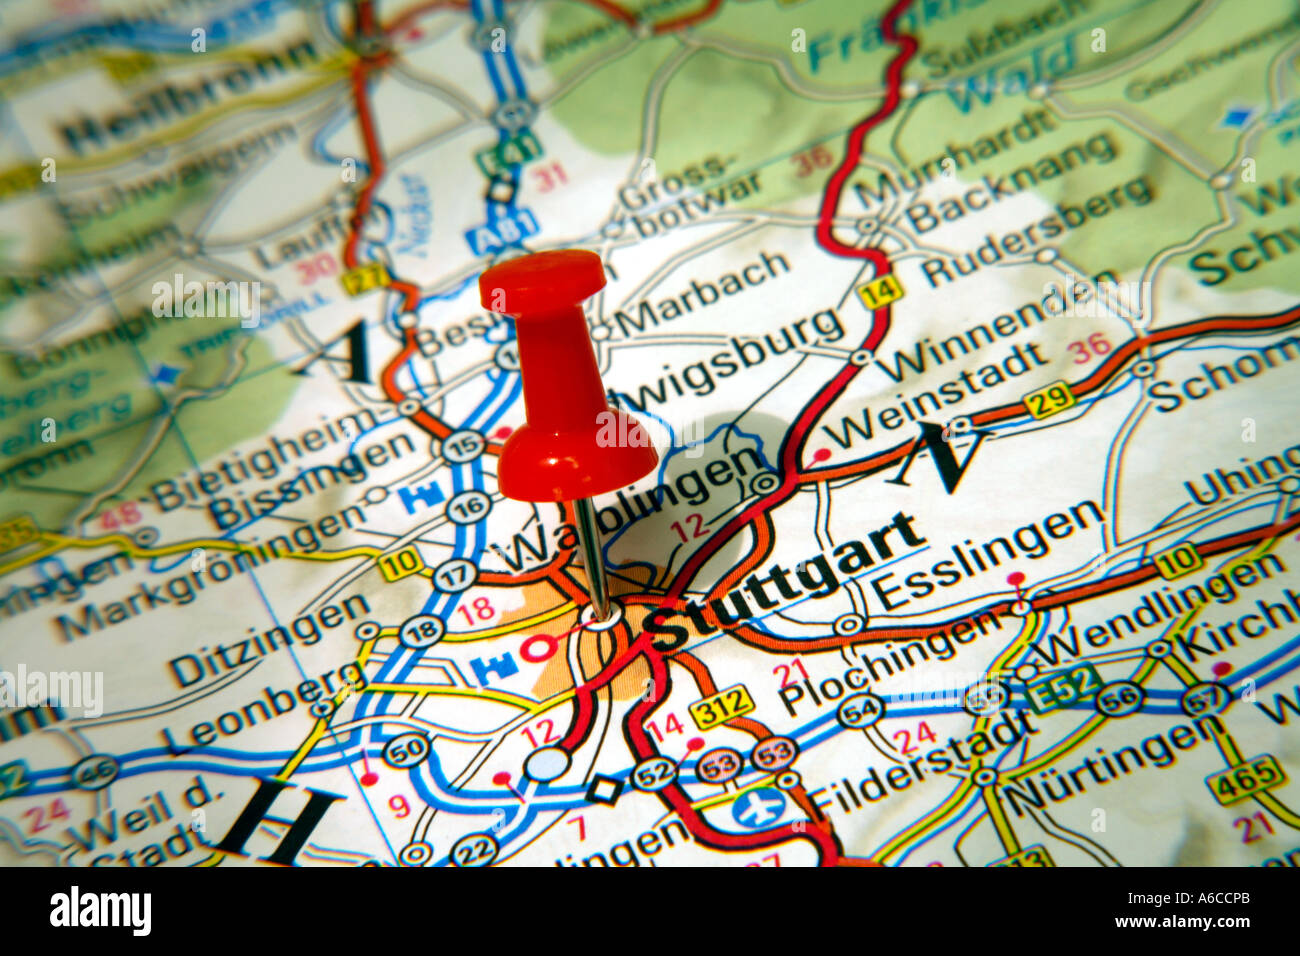 Map Pin pointing to Stuttgart Germany on a road map Stock Photo